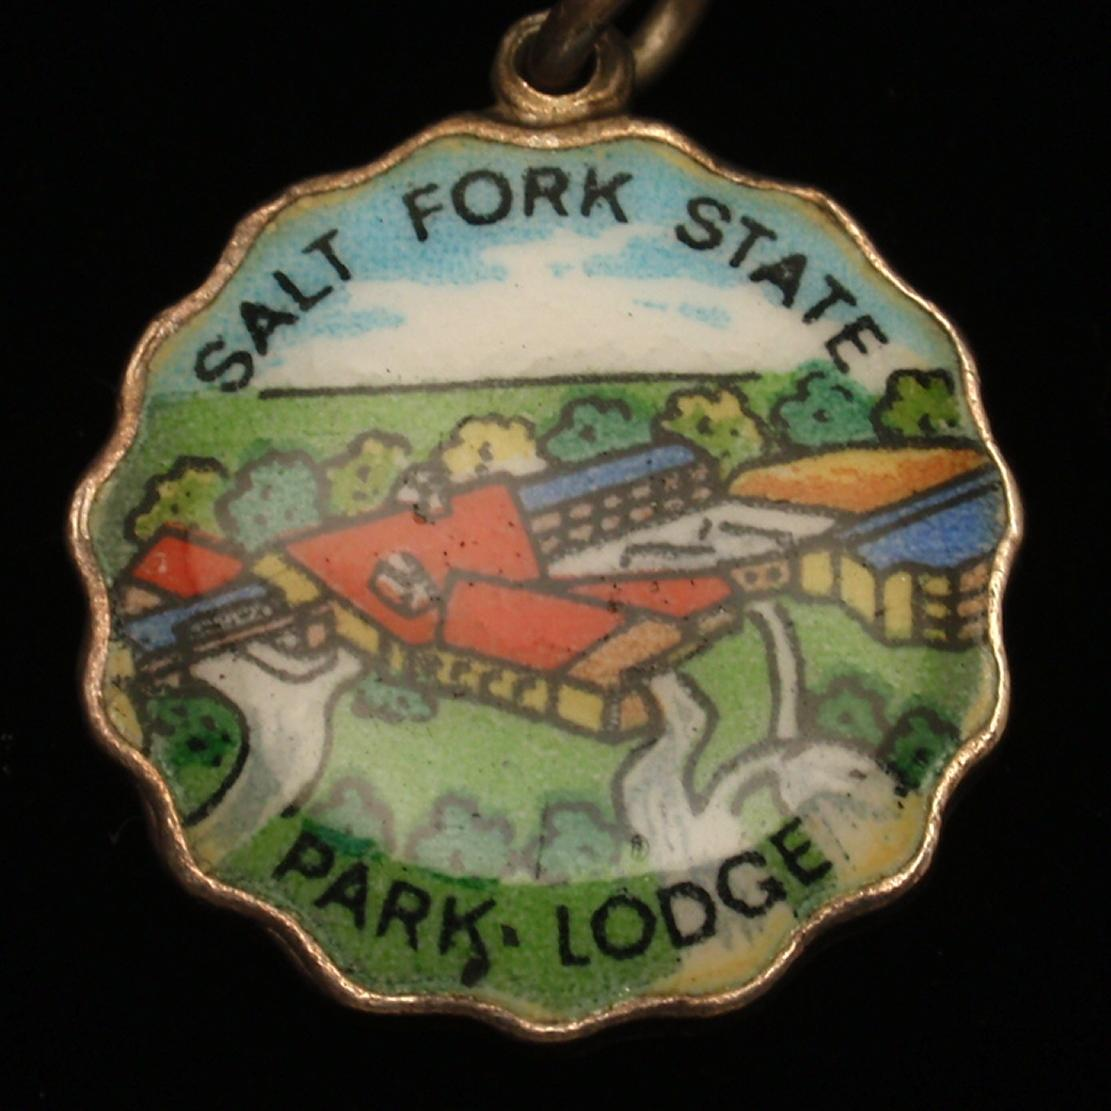 Salt Fork State Park Lodge Ohio Silver & Enamel Charm Travel Souvenir